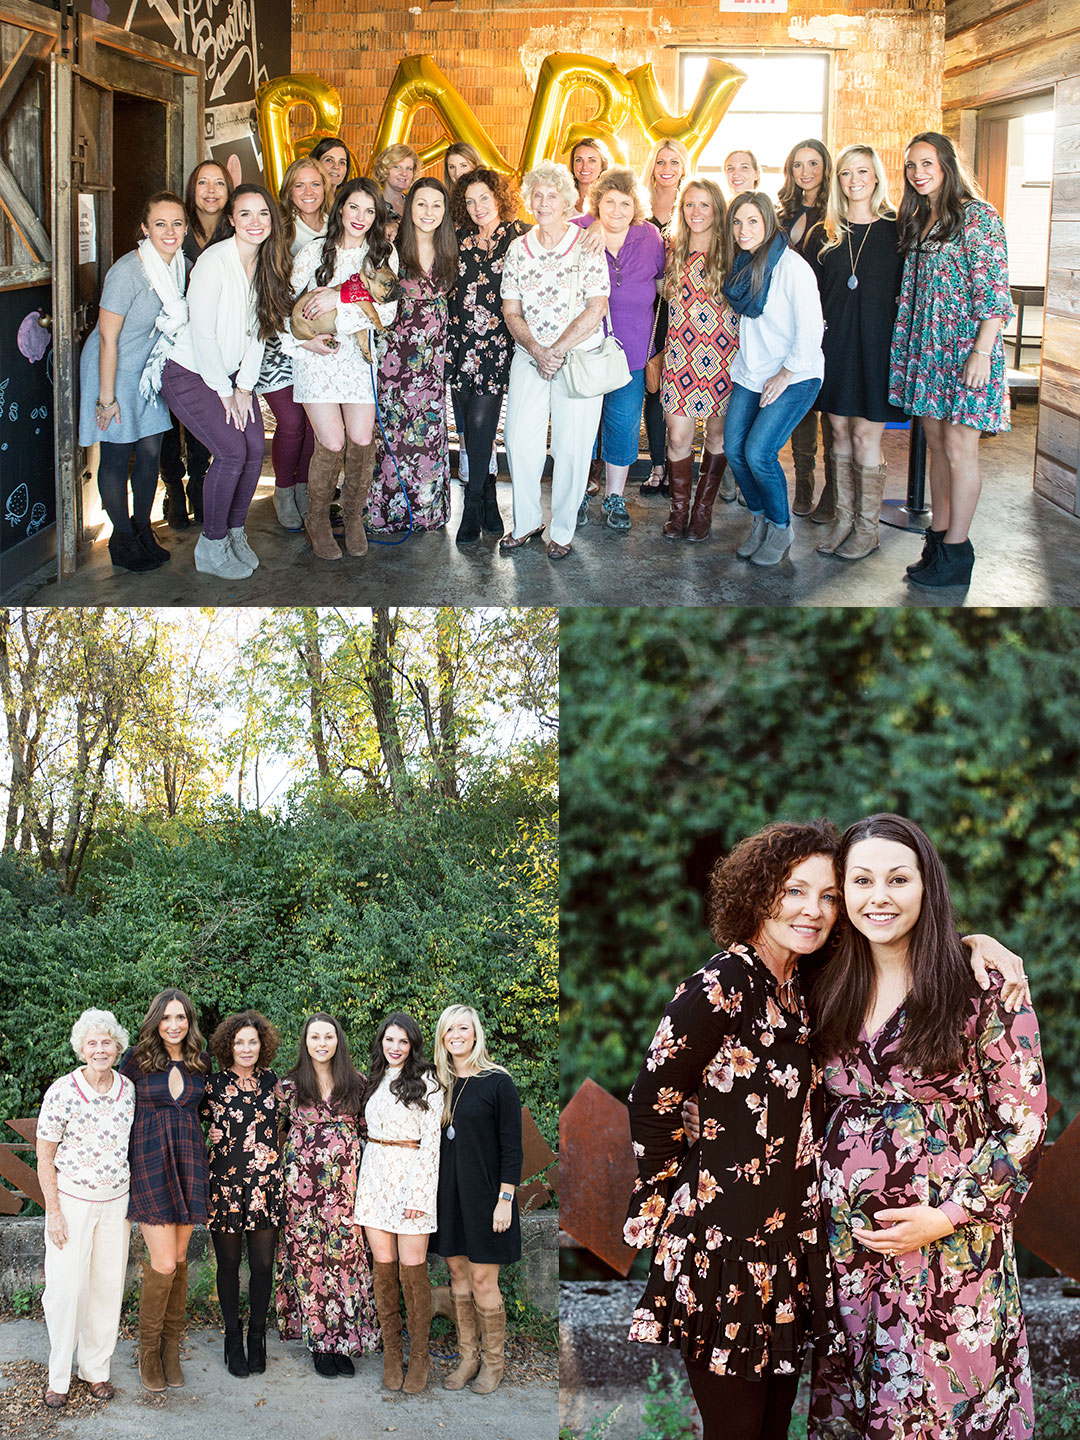 Fall baby shower.  Family photos at baby shower.  Baby shower outfit maternity maxi dress with long sleeves.